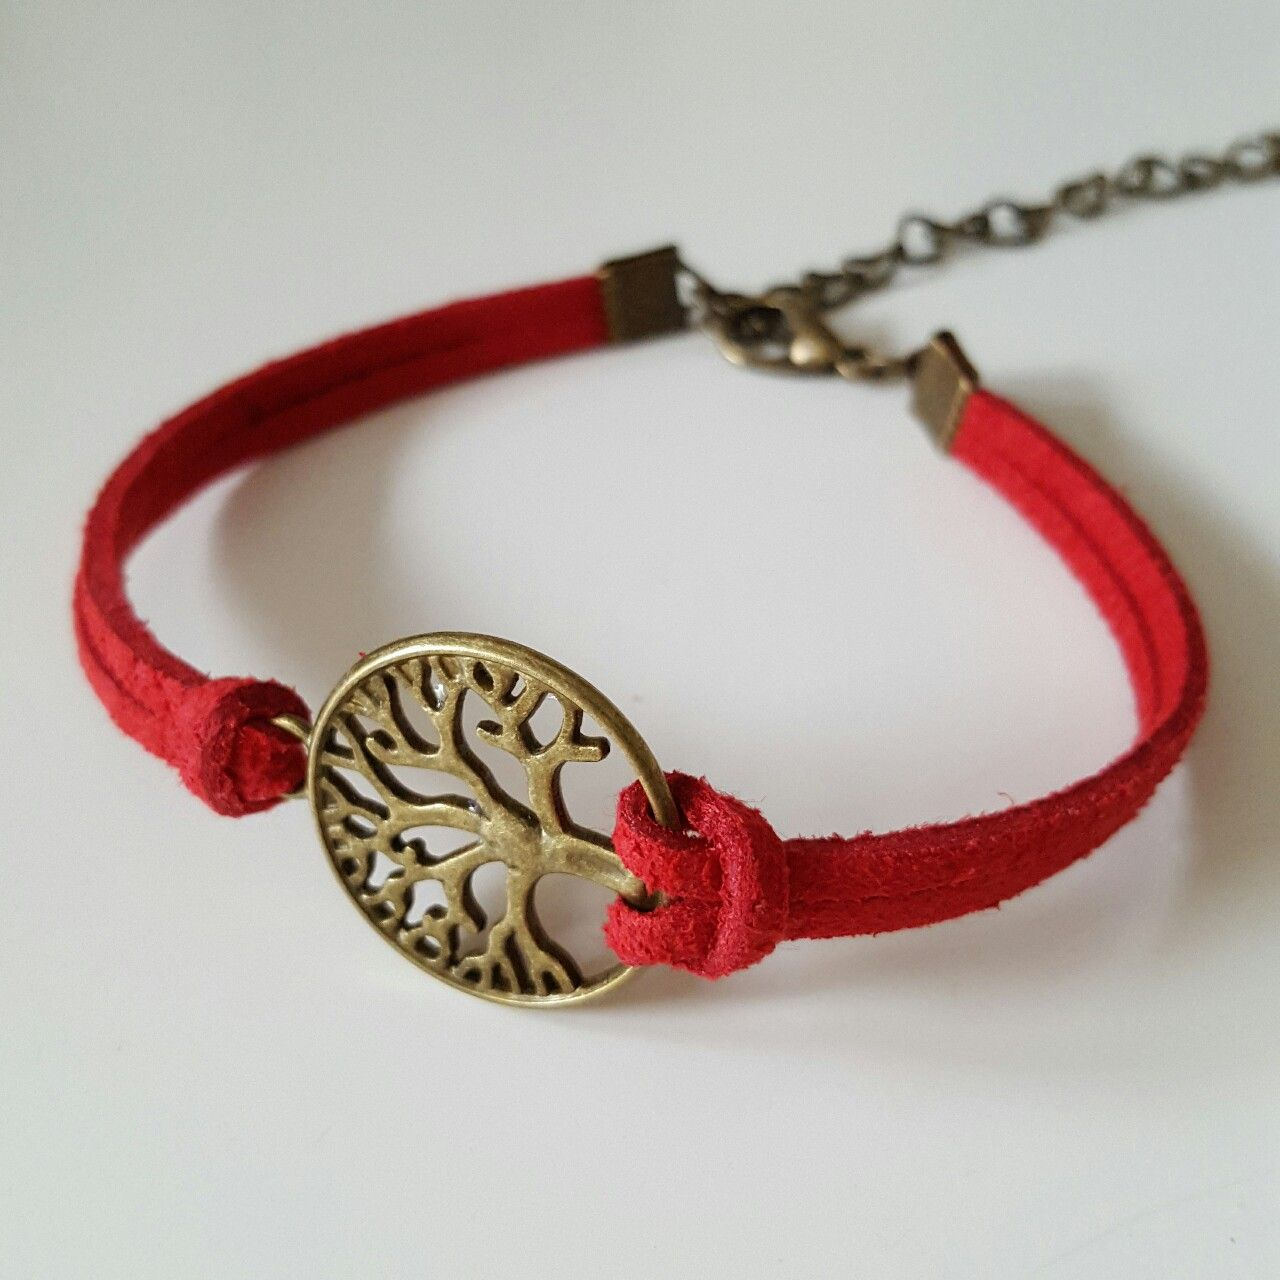 Handmade Red Suede Bronze Tree Of Life Charm Bracelet. #red #suede #bronze #tree #life #bracelet #marlarbracelets #handmade #simple #elegant #casual #unisex #symbol #fashion #freedom #friendship #gift #gorgeous #new #depop #summer #ireland #irish #2016